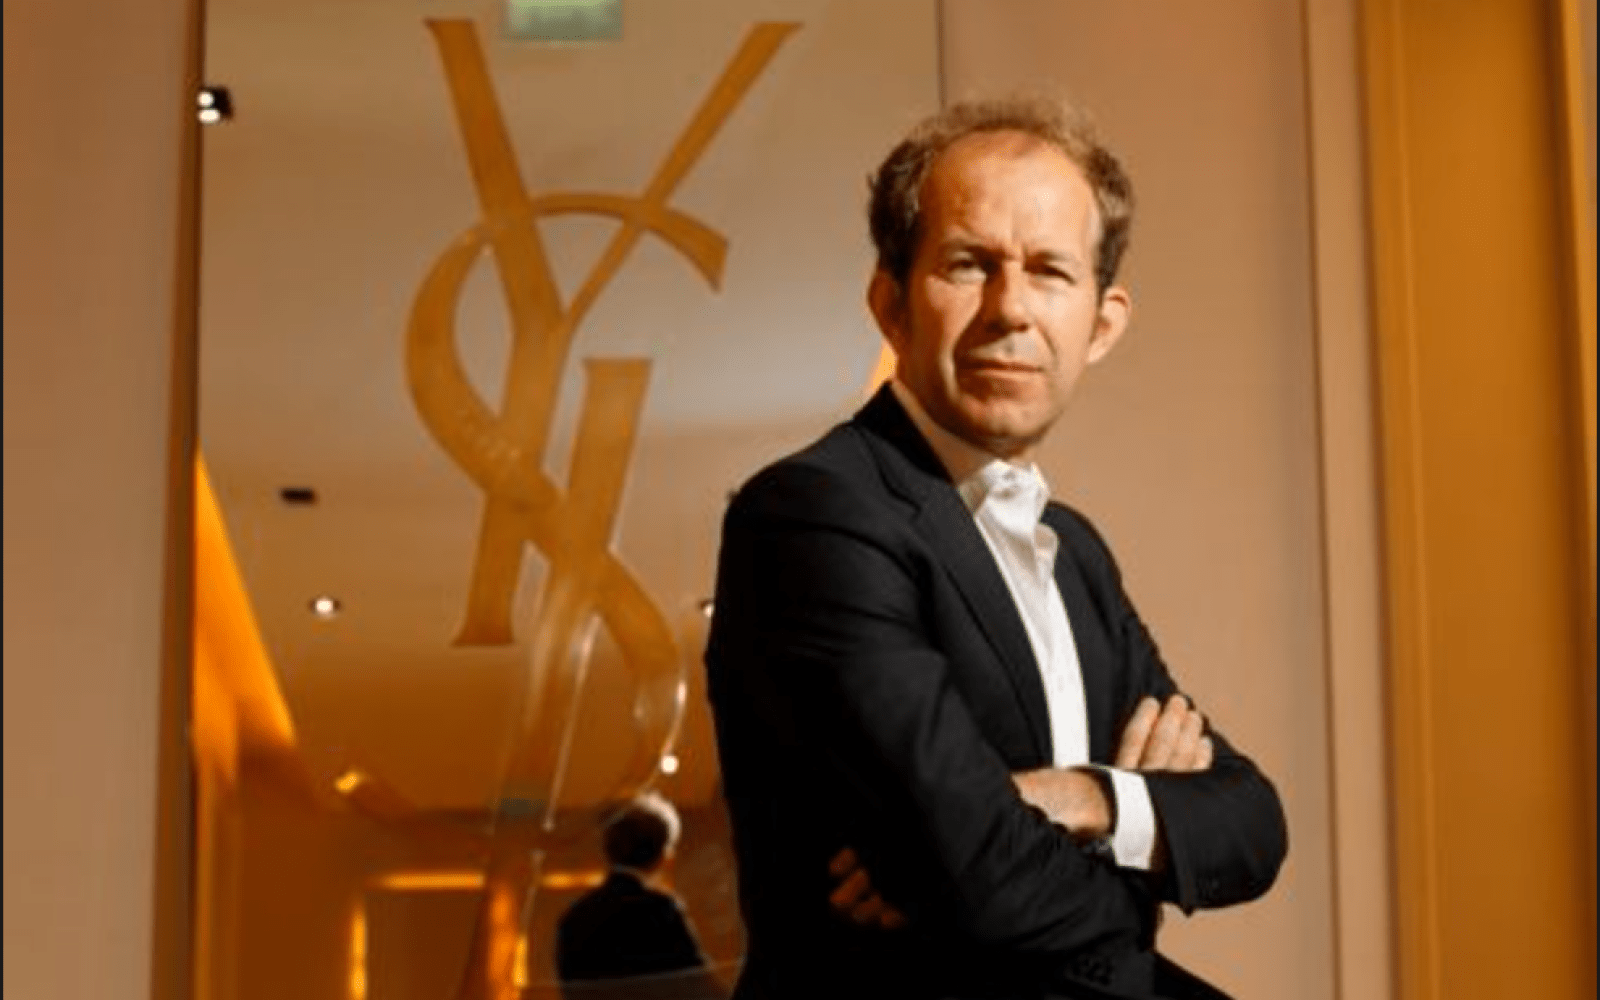 Apple hires former YSL CEO Paul Deneve to work on special projects under Tim Cook